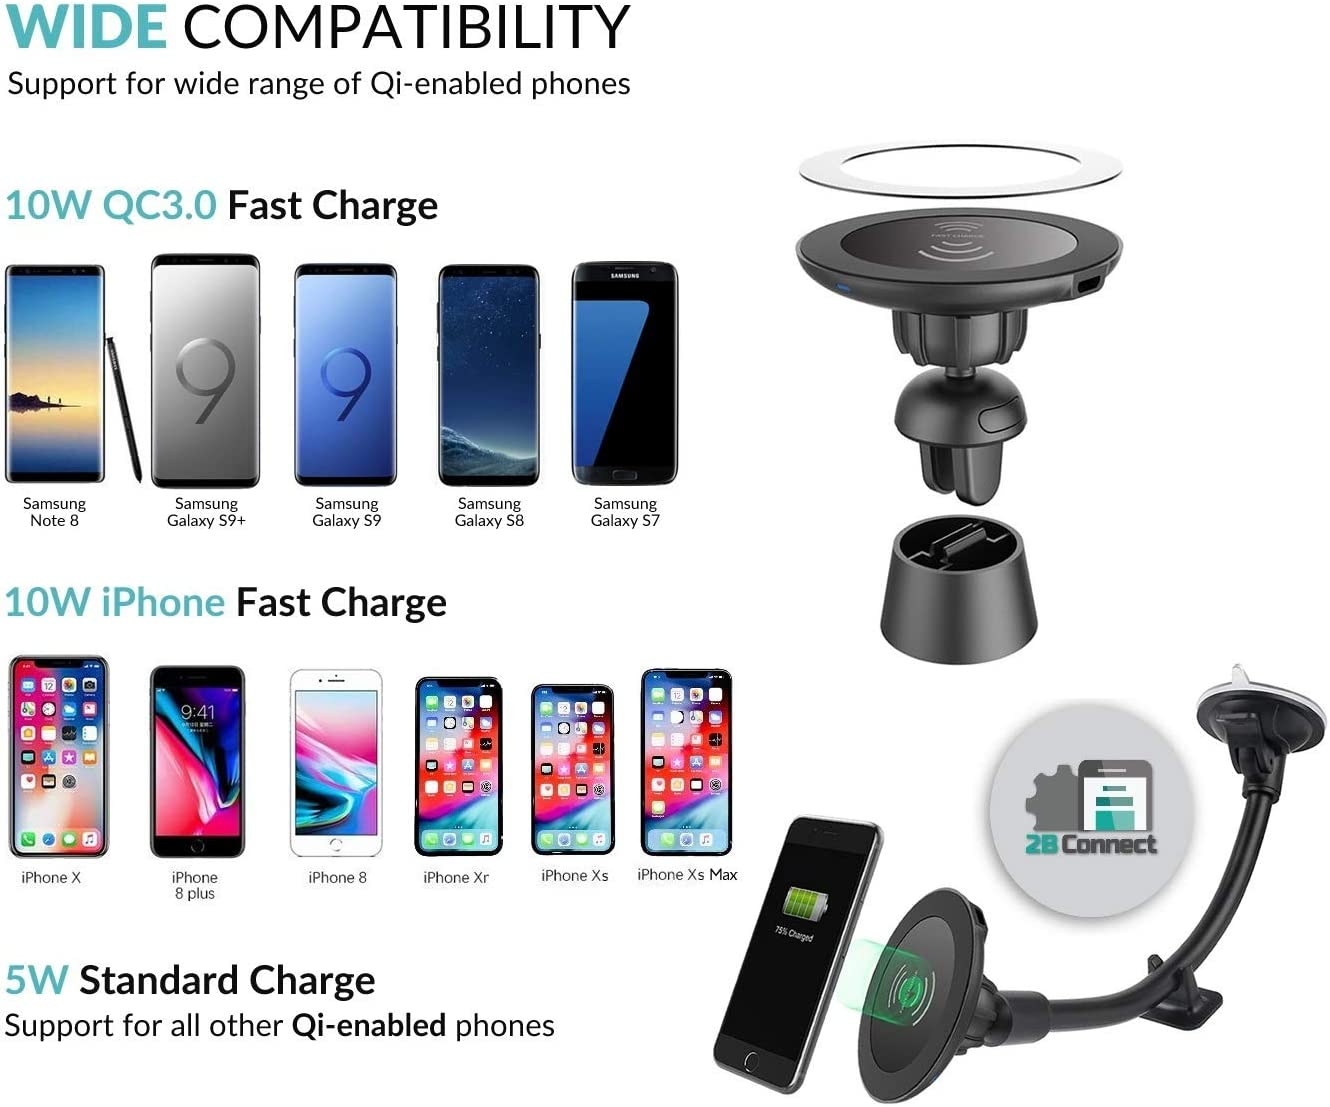 Wireless Car Charger for iPhone X iPhone 8 Plus//iPhone 8 and Note 5-Black BAMAN BAMAN-Air and Other Qi-Enabled Devices Provides Fast-Charging for Samsung Galaxy Note 8//S8// S8+// S7 // S7 Edge // S6 Edge+